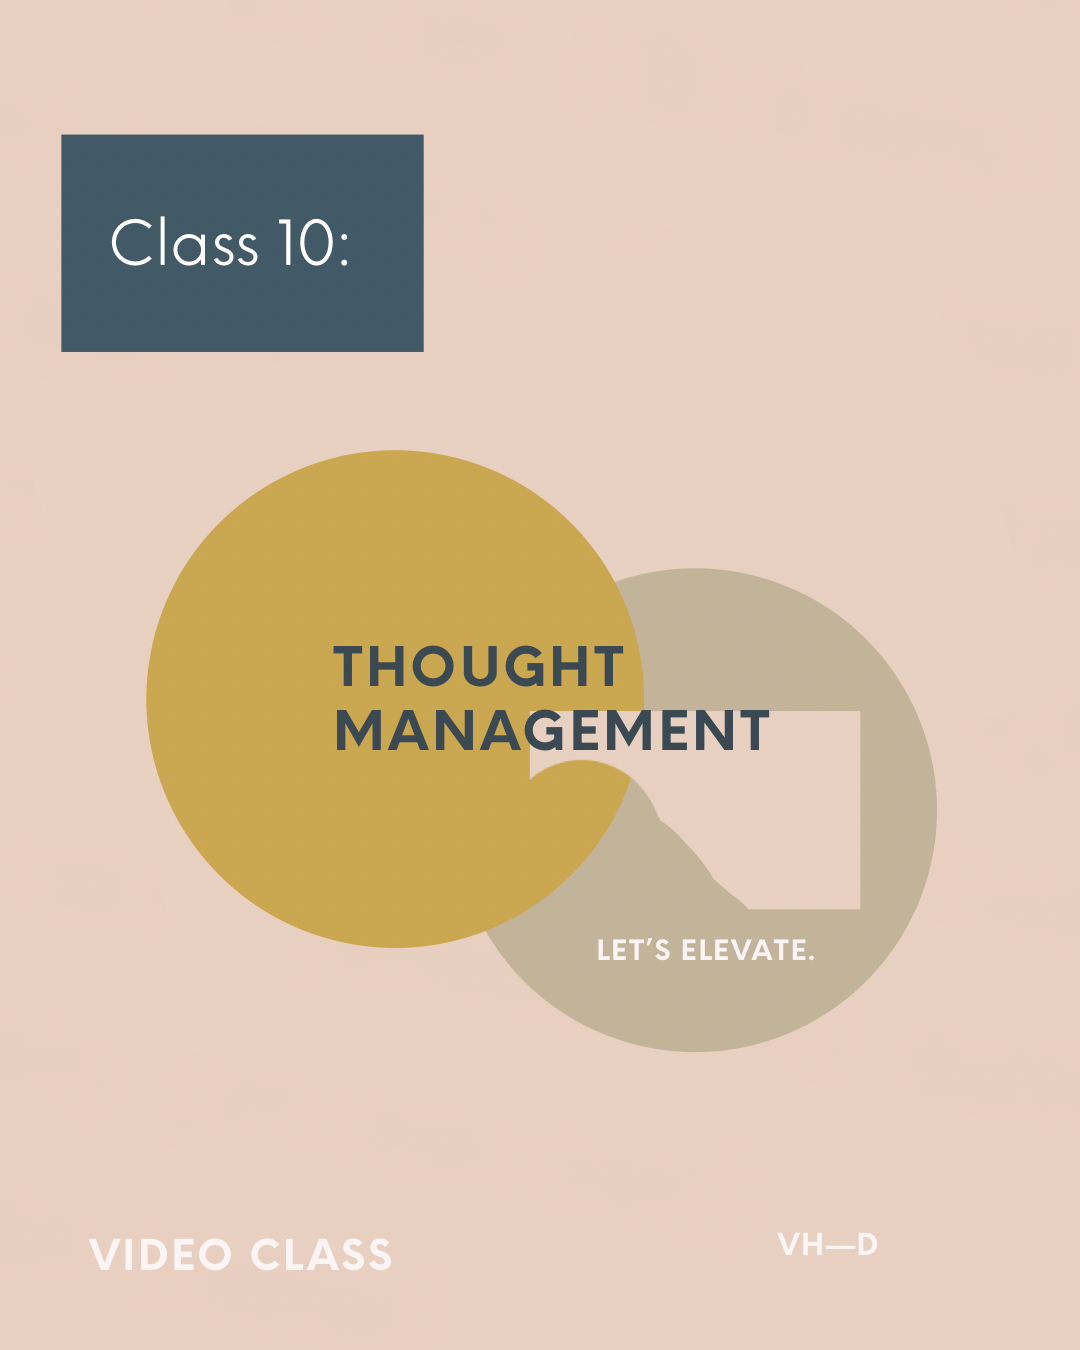 Thought Management - Let's elevate and liberate!Is your mind free, balanced, and in harmony with your highest good?